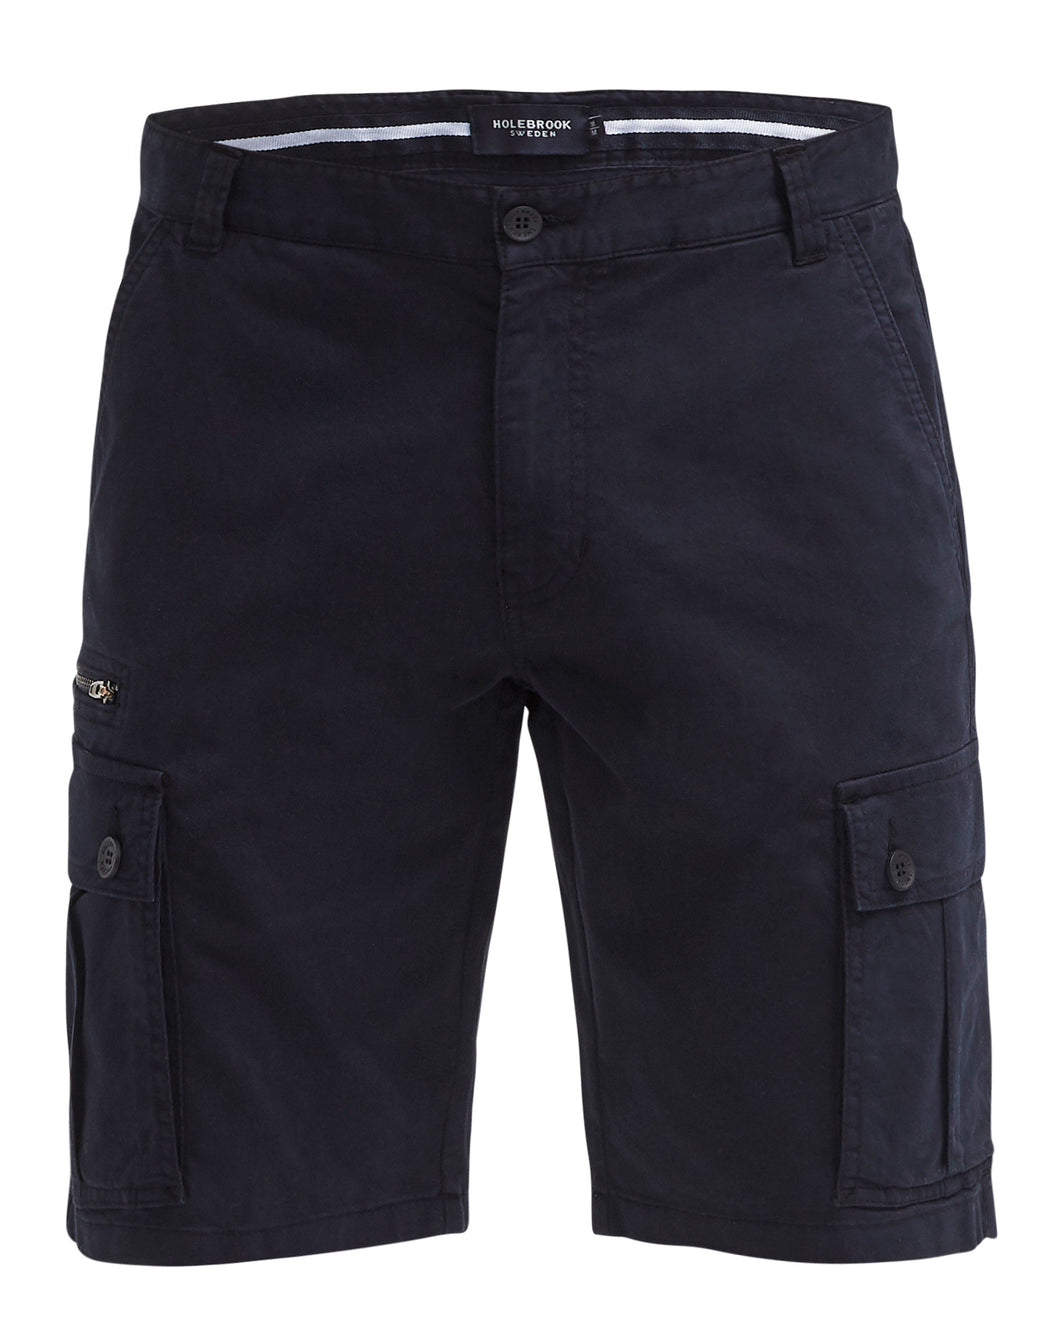 Holebrook Sweden Tobbe Cargo Shorts (NEW)